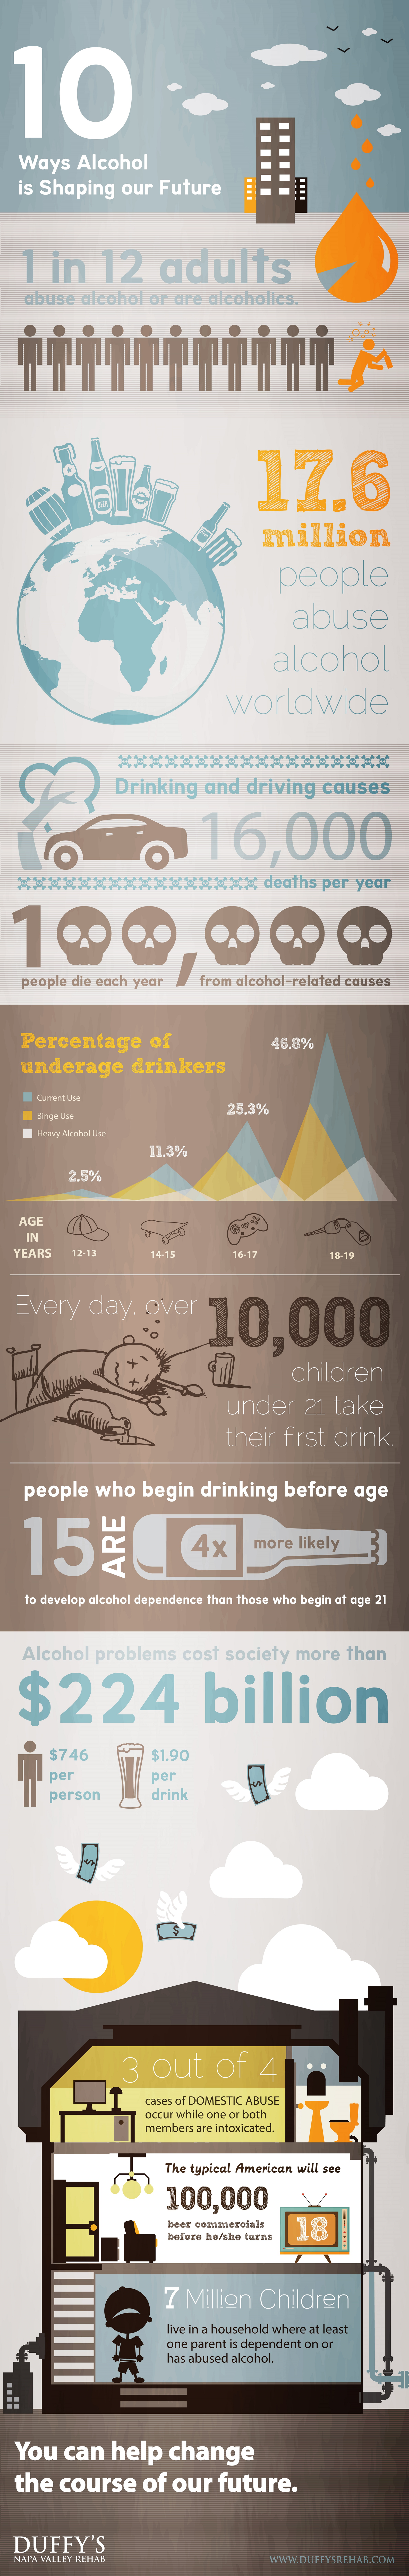 10 Alcohol Stats Infographic